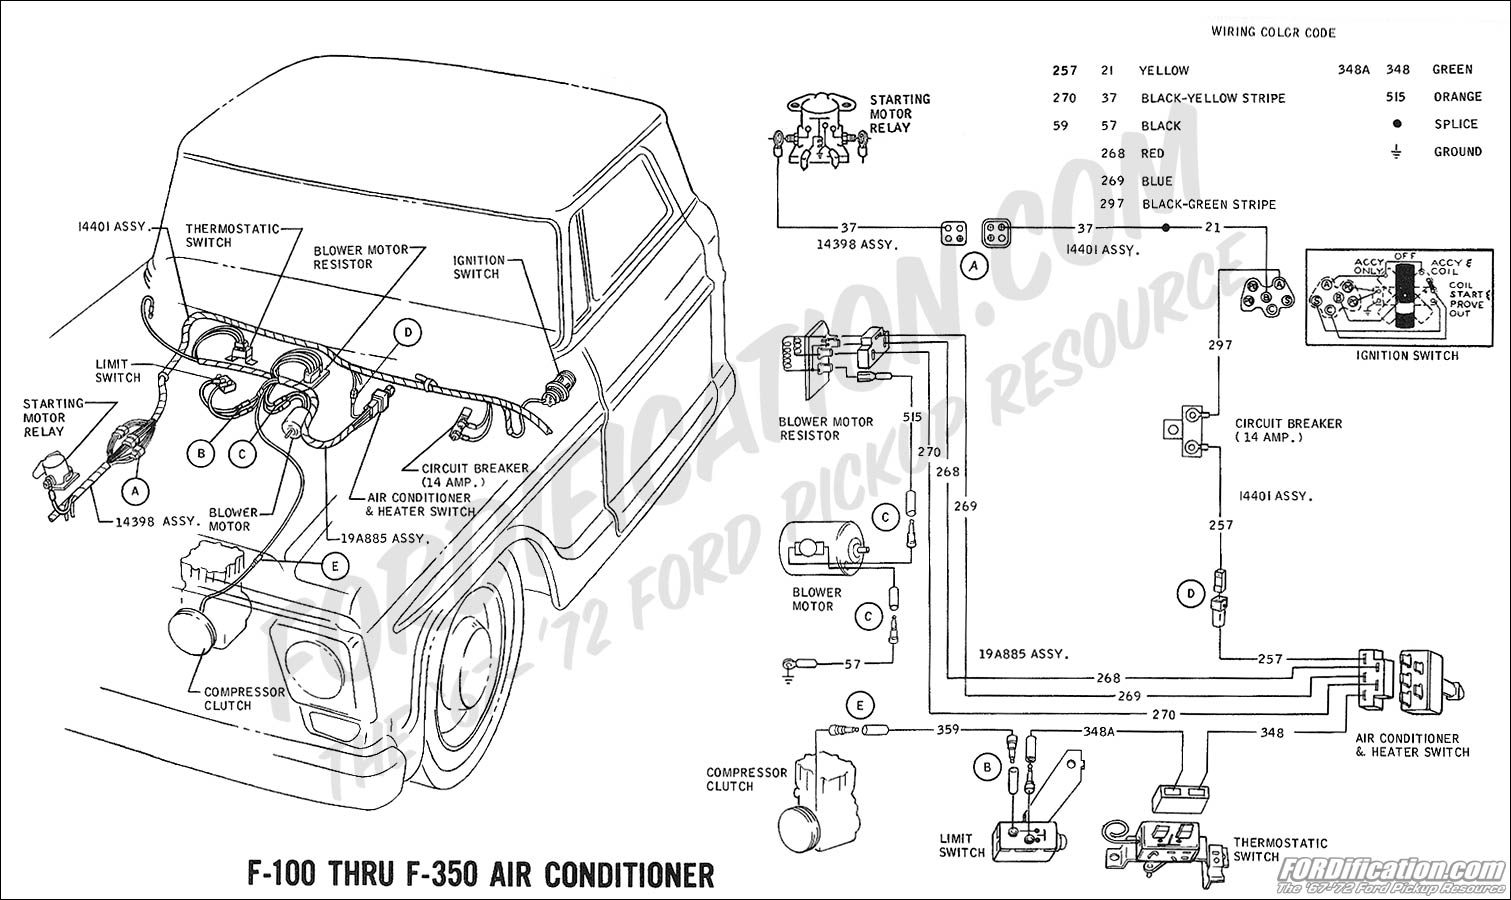 1985 ford f 150 wiring diagram ford truck technical drawings and schematics section h wiring  ford truck technical drawings and